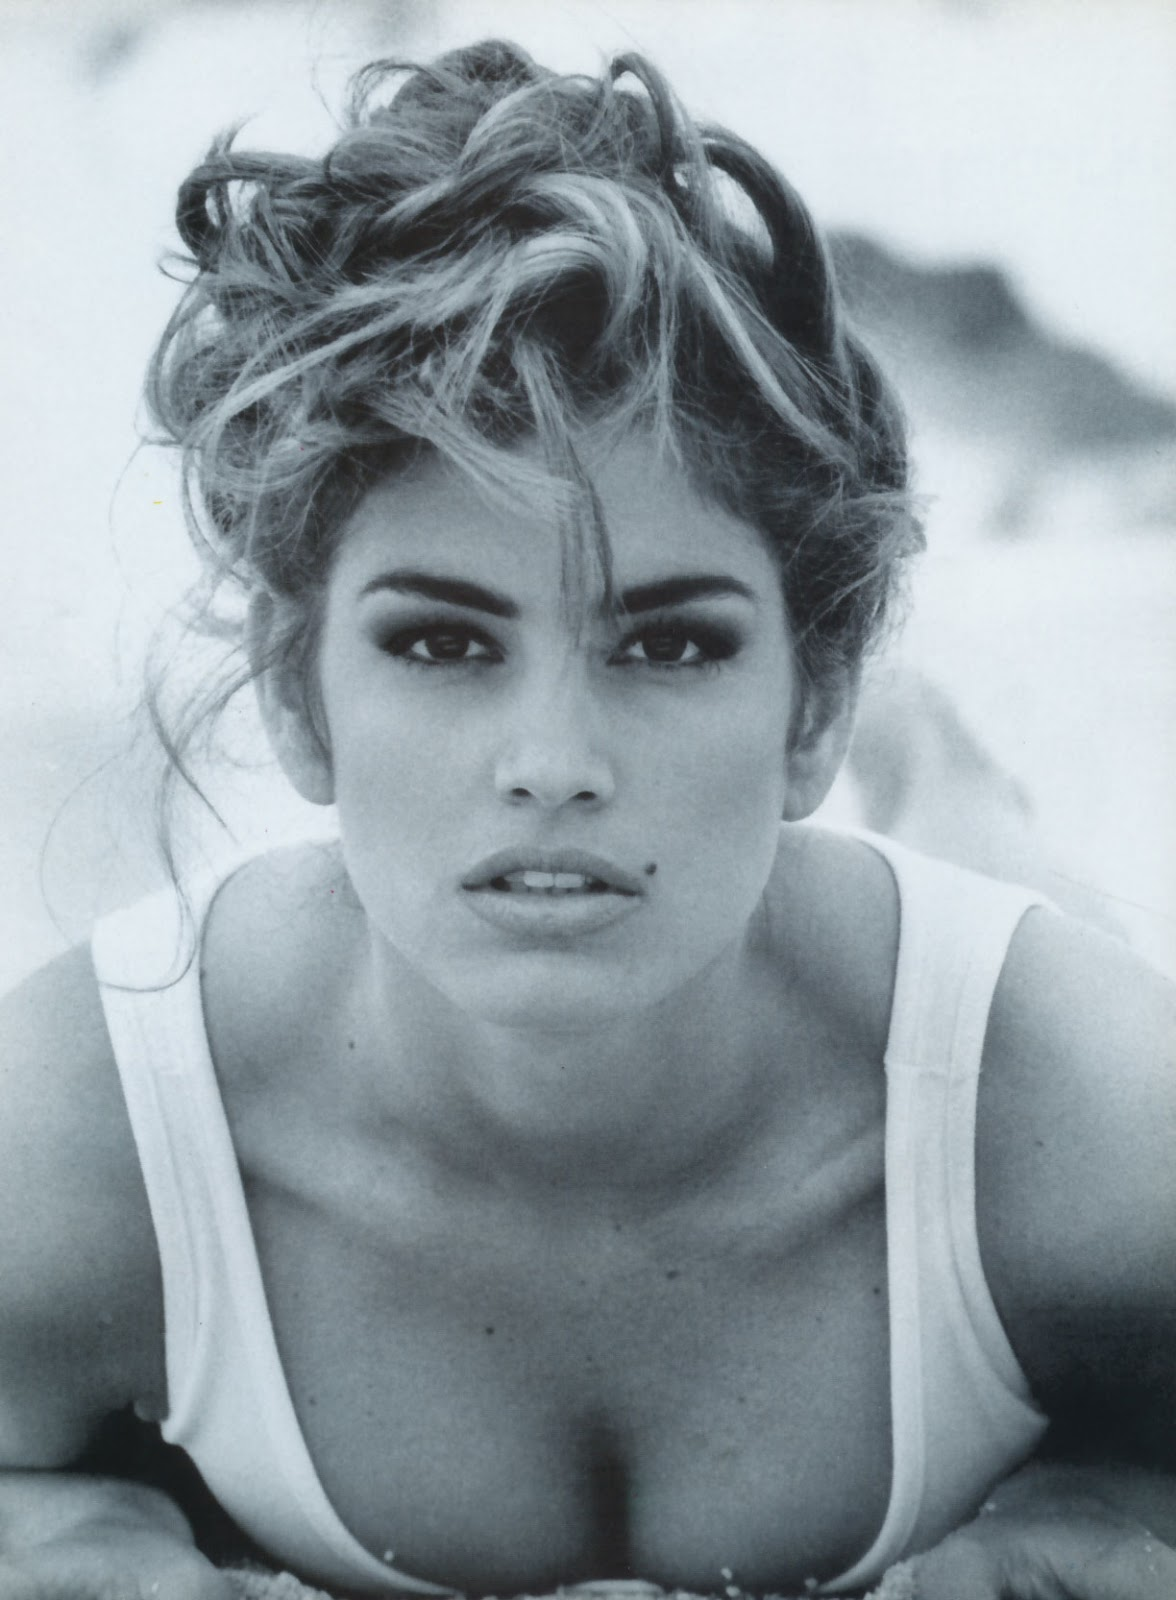 a-guide-to-cool-cindy-crawford-folkr-blog-photo-mode-12